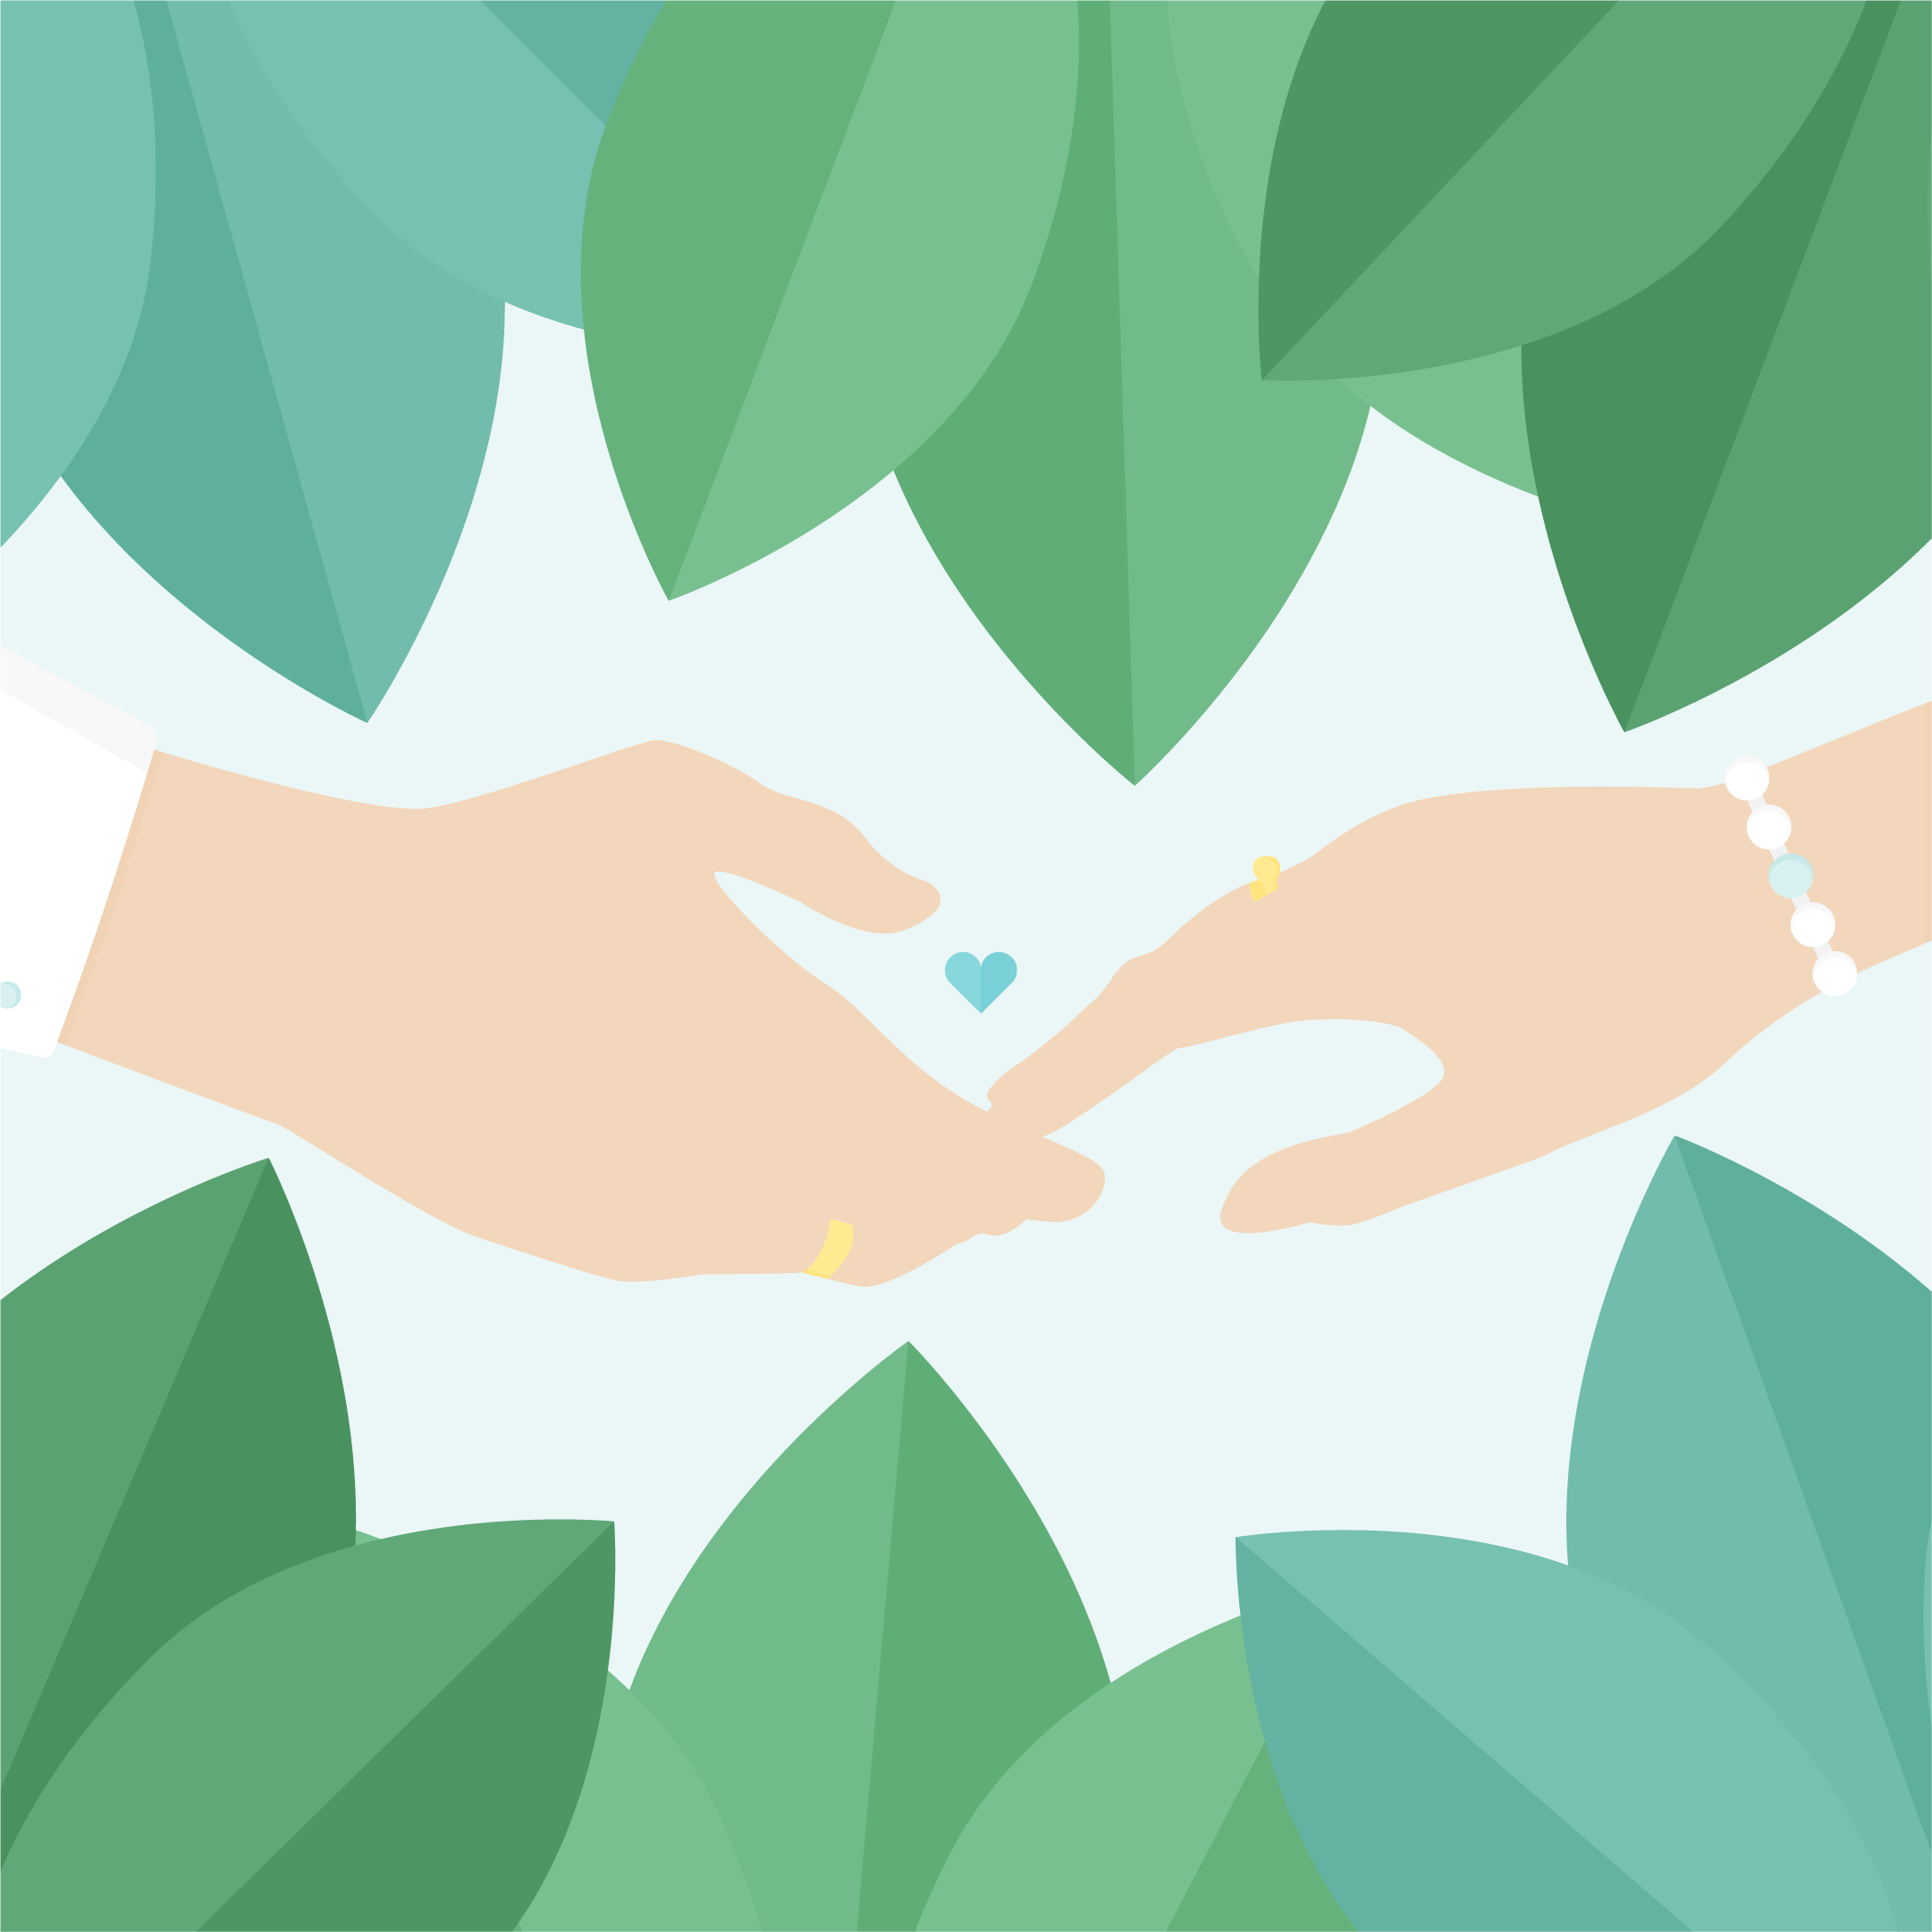 Vector illustration of a married couple's hands touching with leaves around it in flat design style